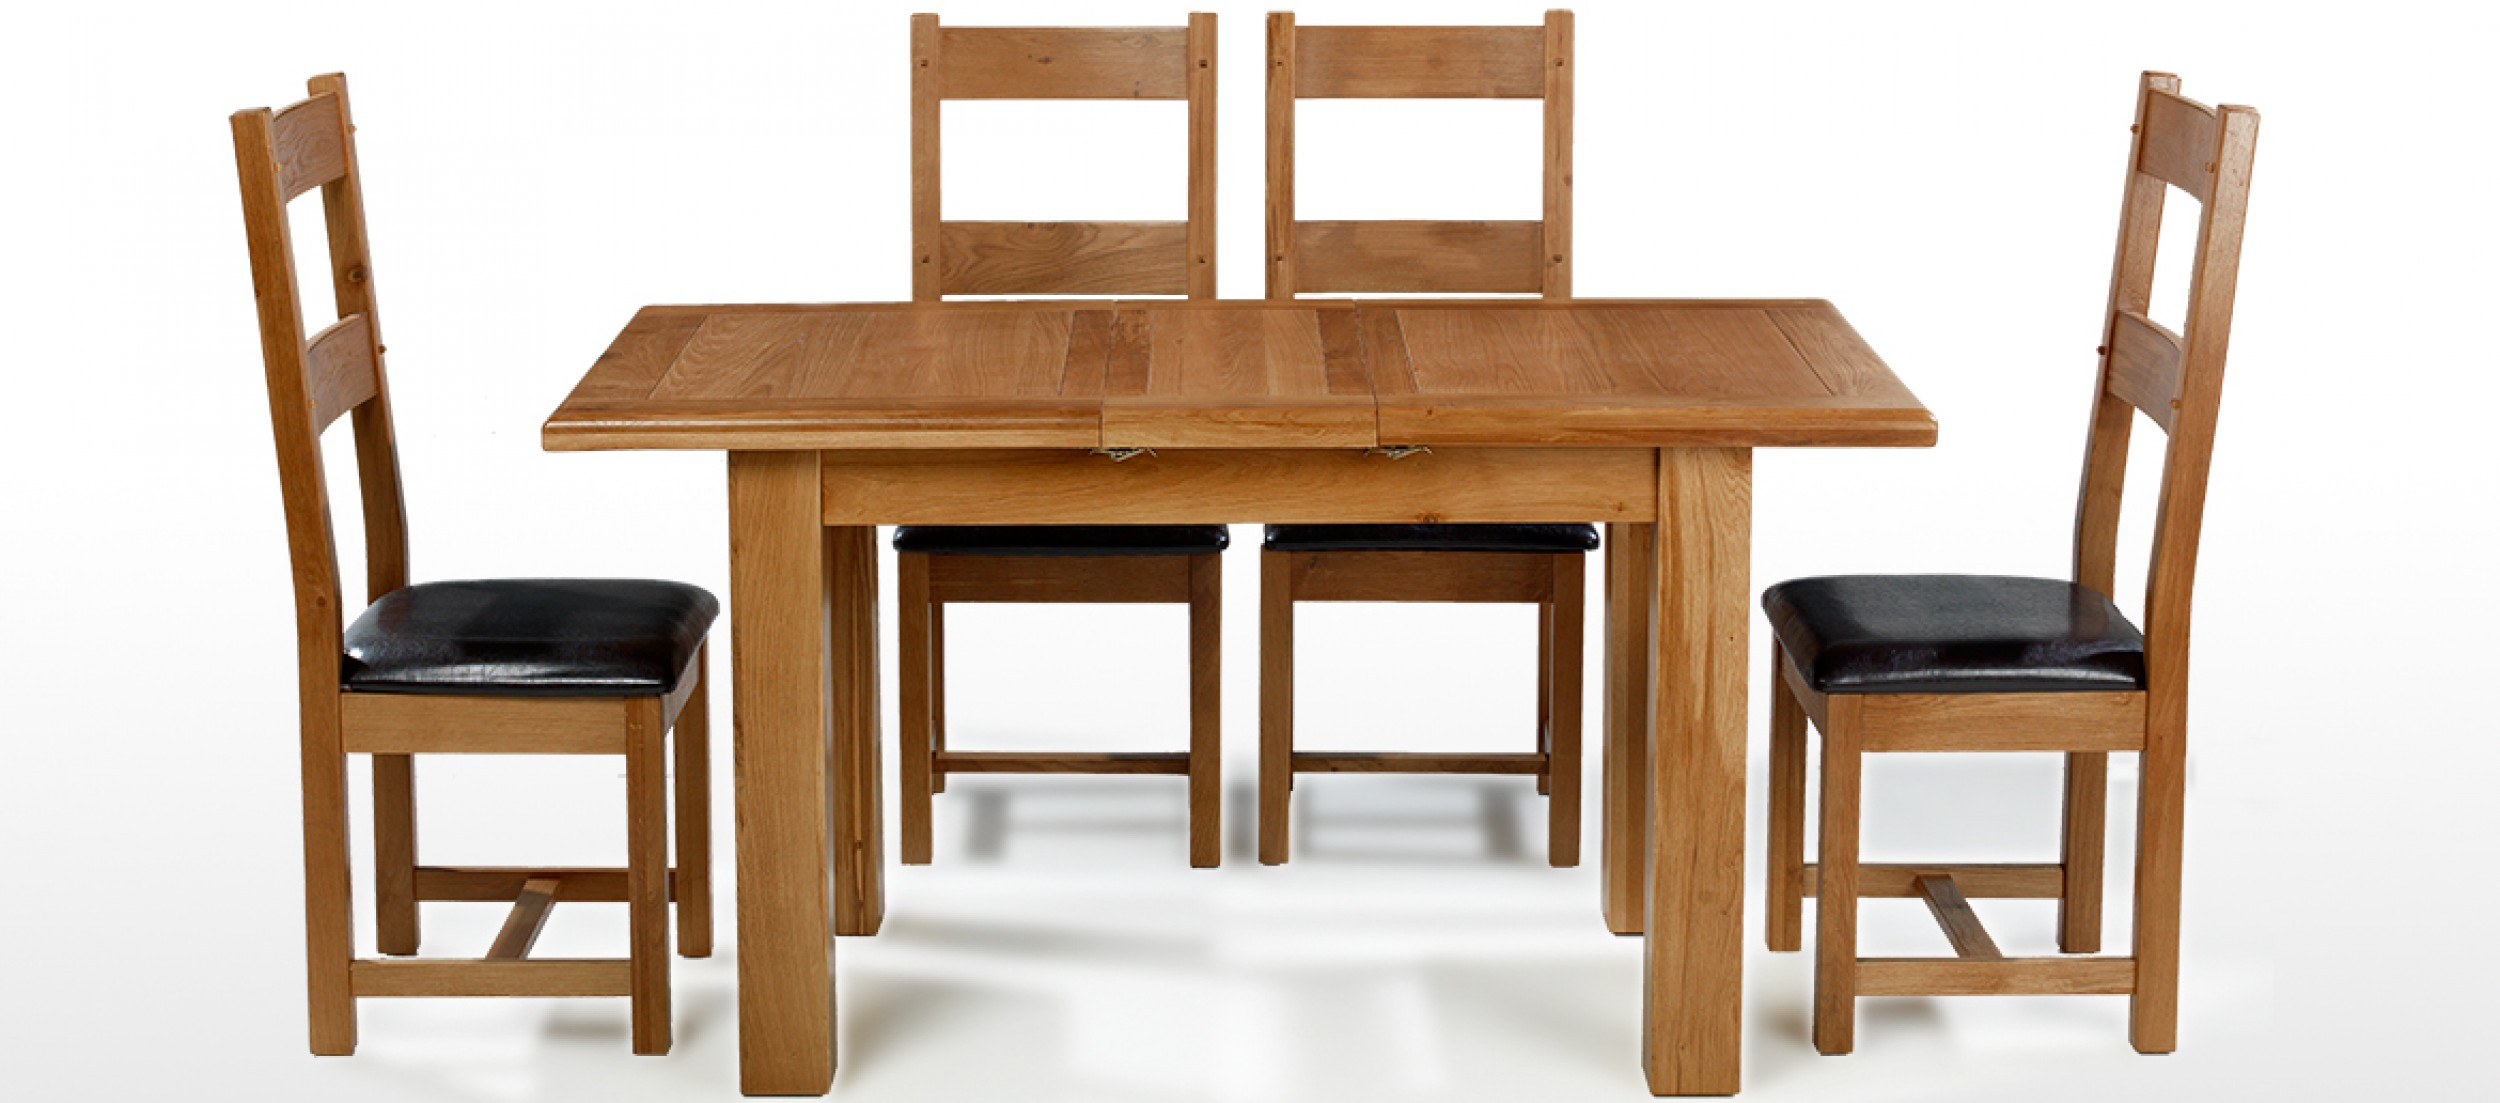 barham oak 120 150 cm extending dining table and 4 chairs quercus living. Black Bedroom Furniture Sets. Home Design Ideas